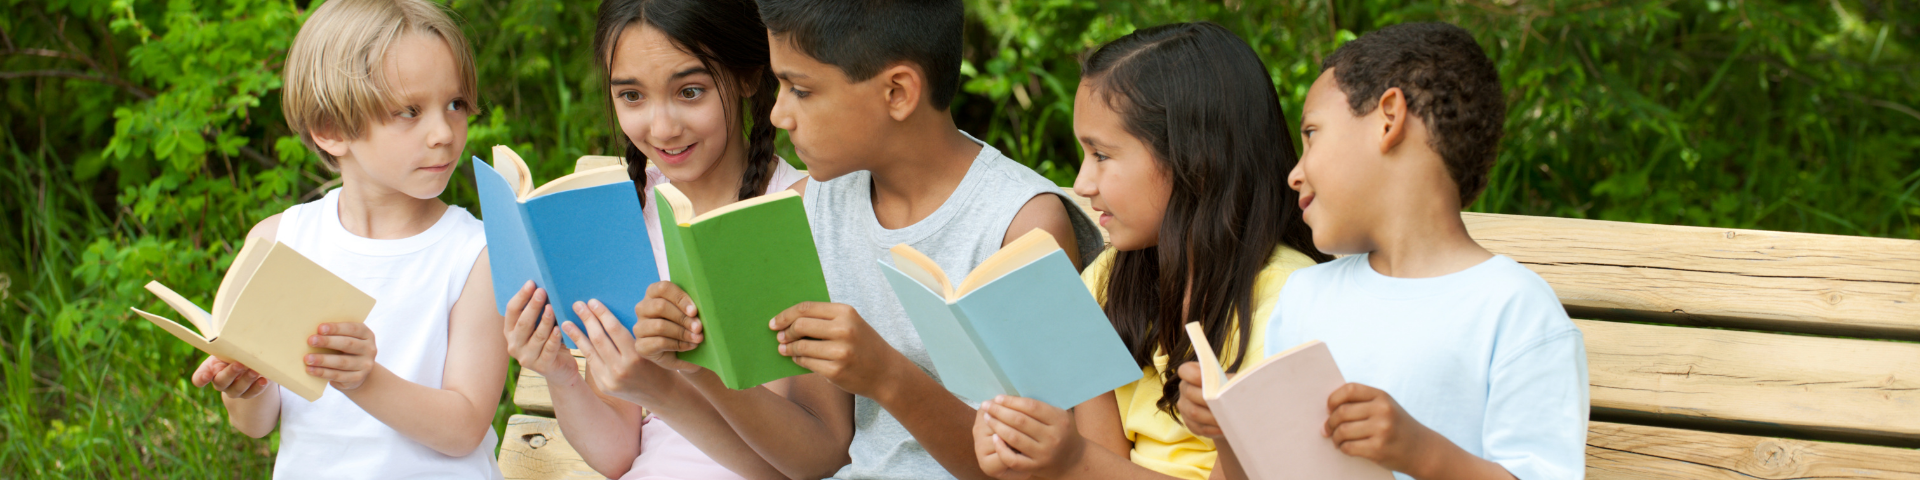 five children reading books on a park bench